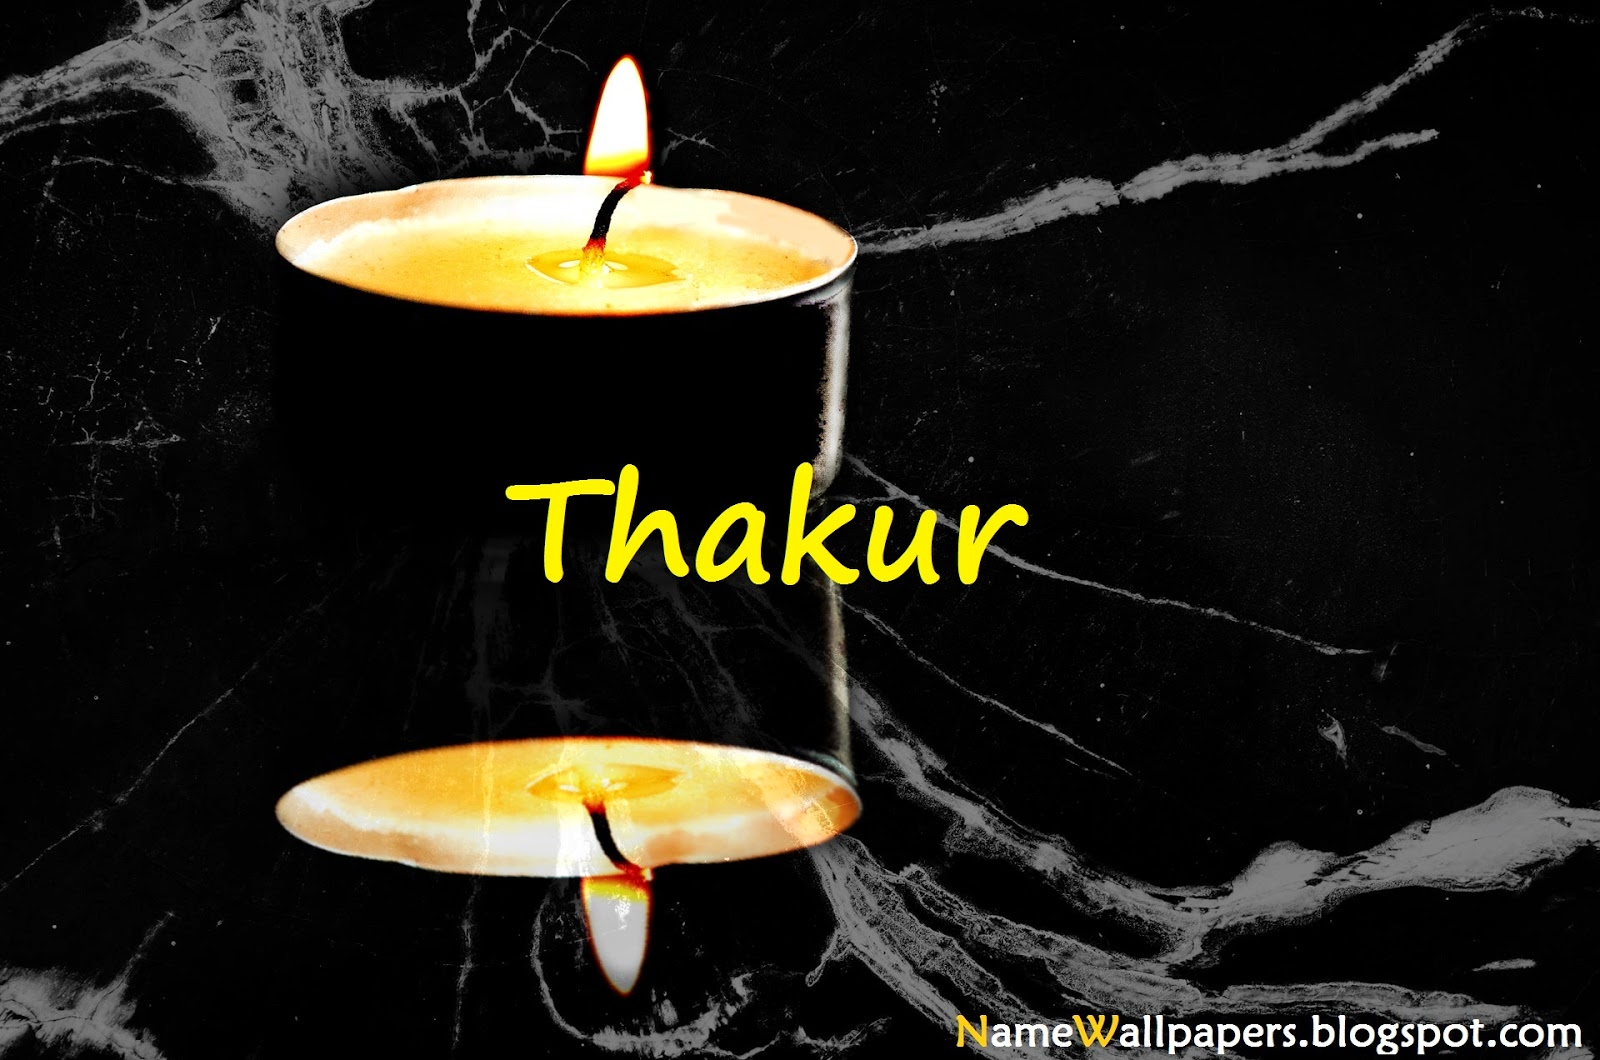 Download Wallpaper Name Thakur - Thakur%2B10  Trends_279512.jpg